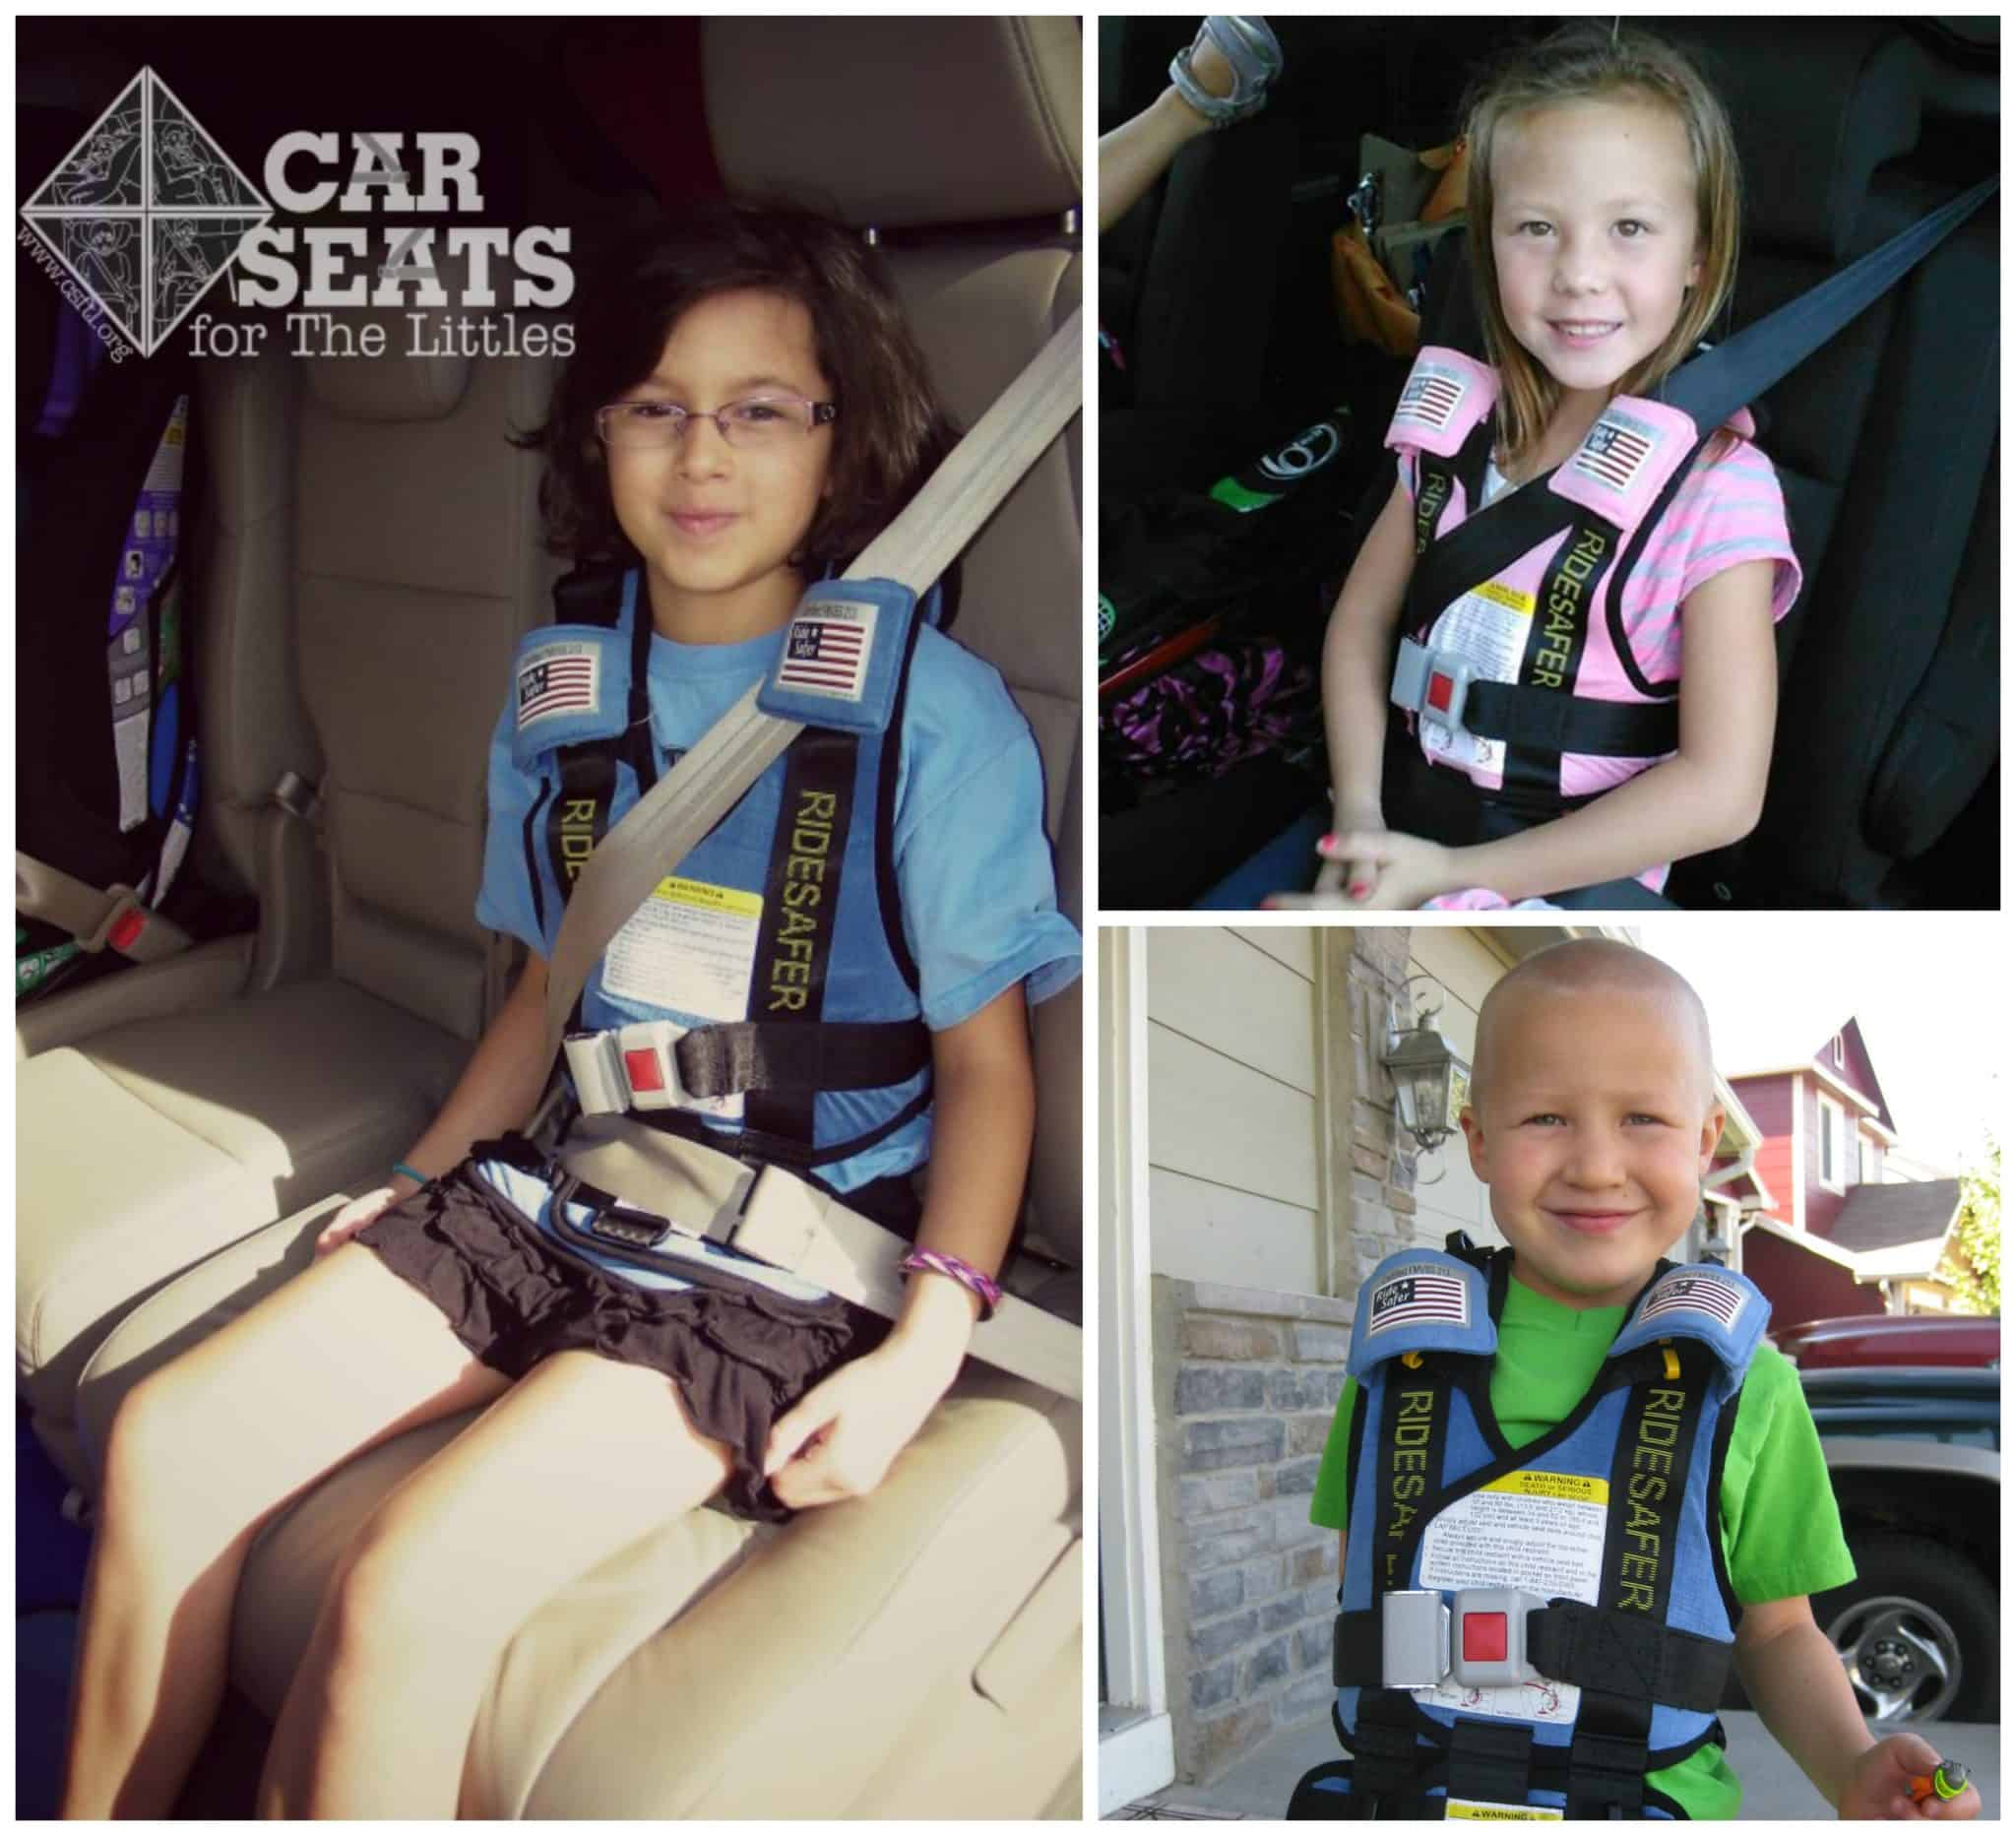 Florida Travel Vests Images Ride Safer Vest Review Car Seats For The Littles Jpg